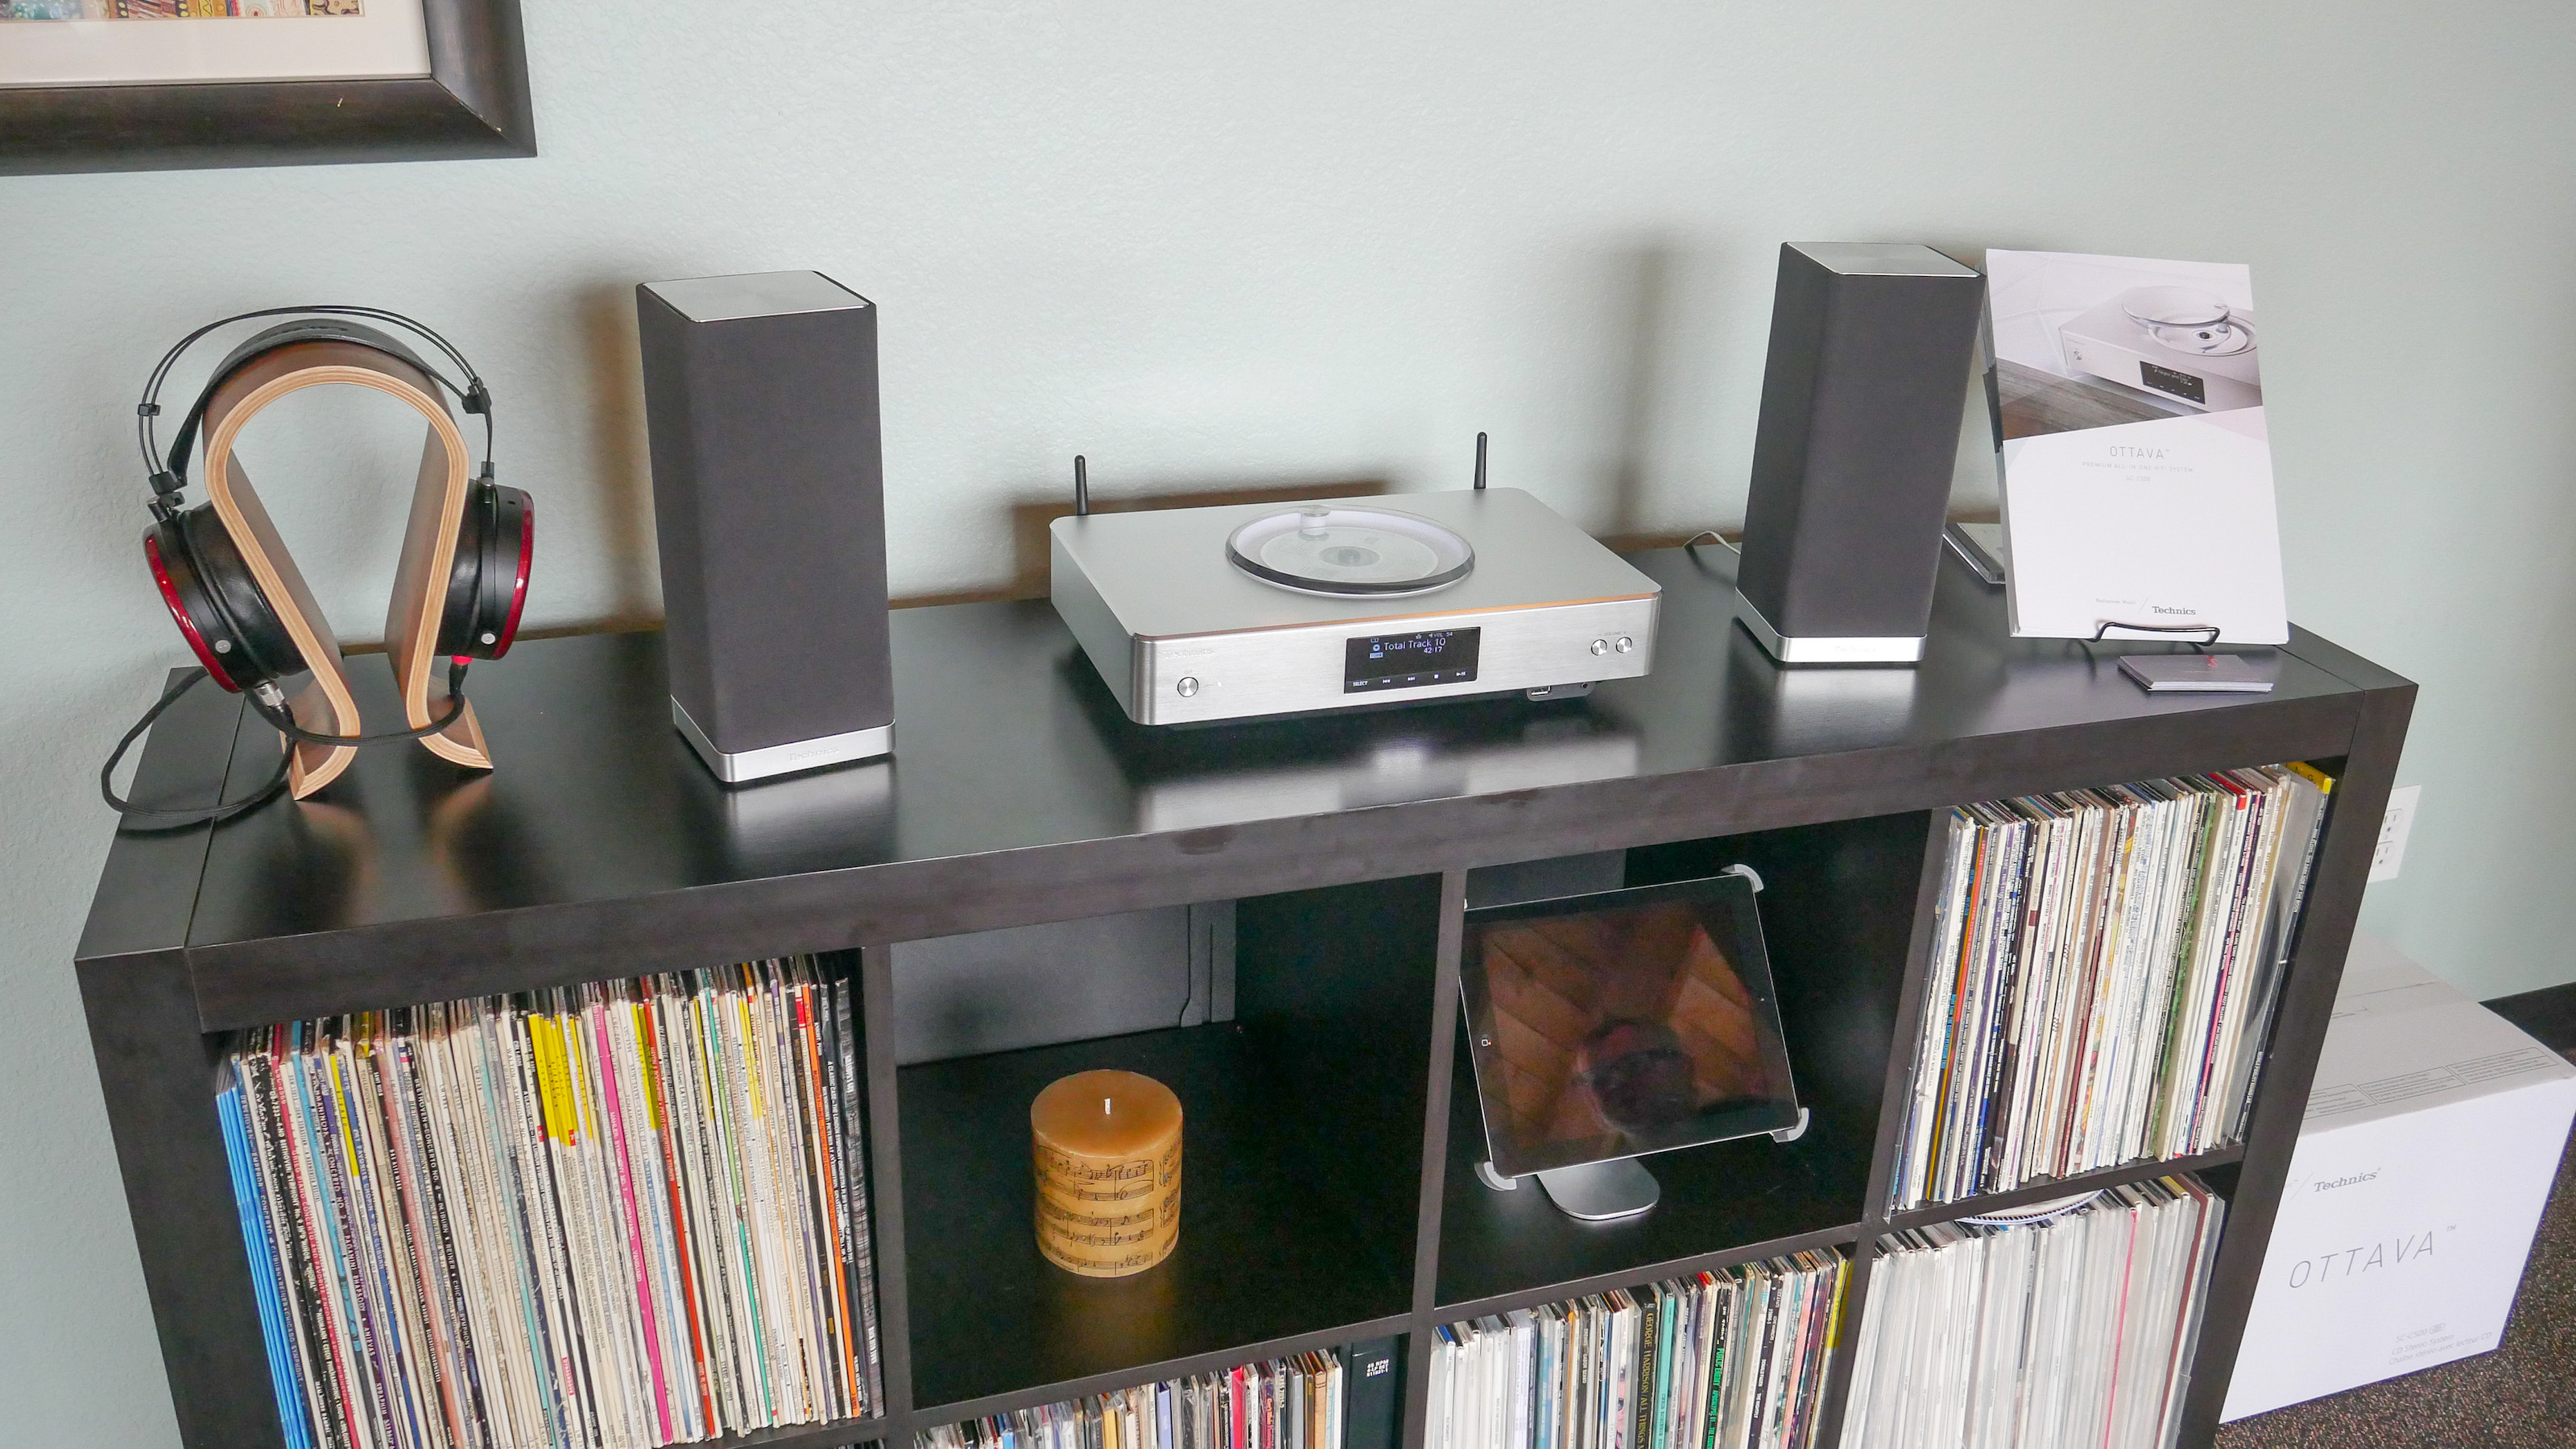 http://audiophilereview.com/images/Tec7.jpg